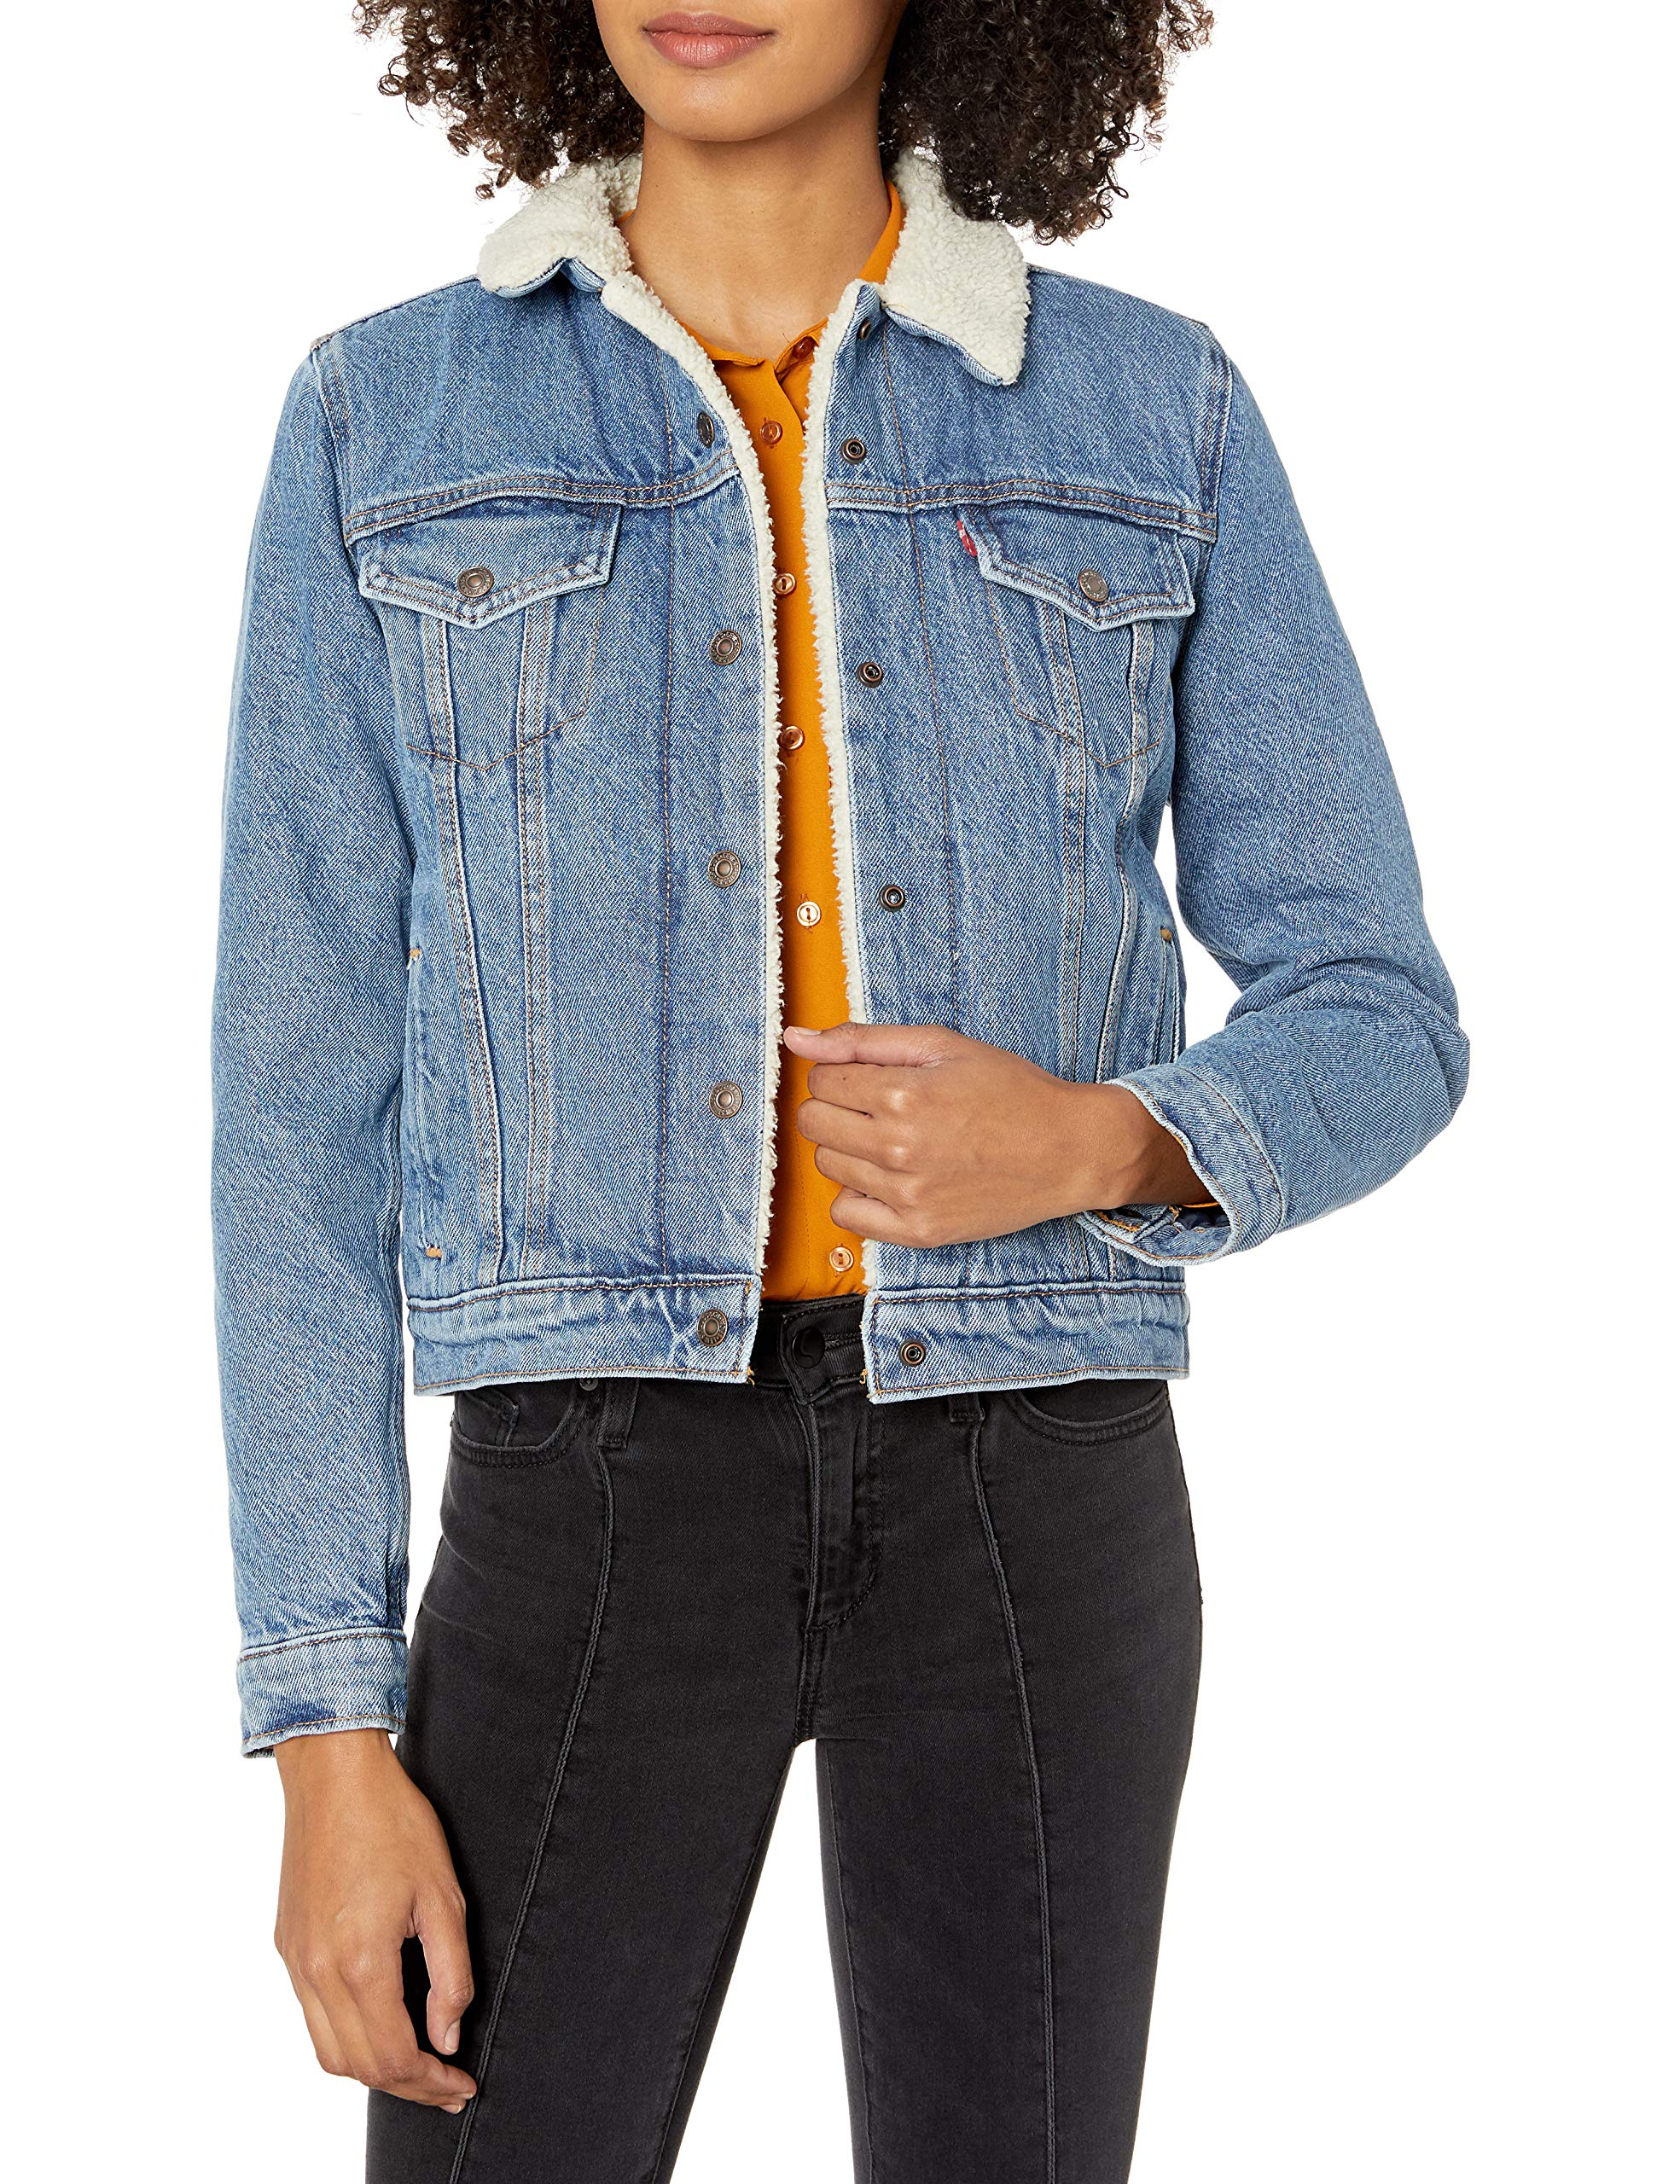 Levi's Women's Original Sherpa Trucker Jackets, Divided Blue, Medium by Levi's